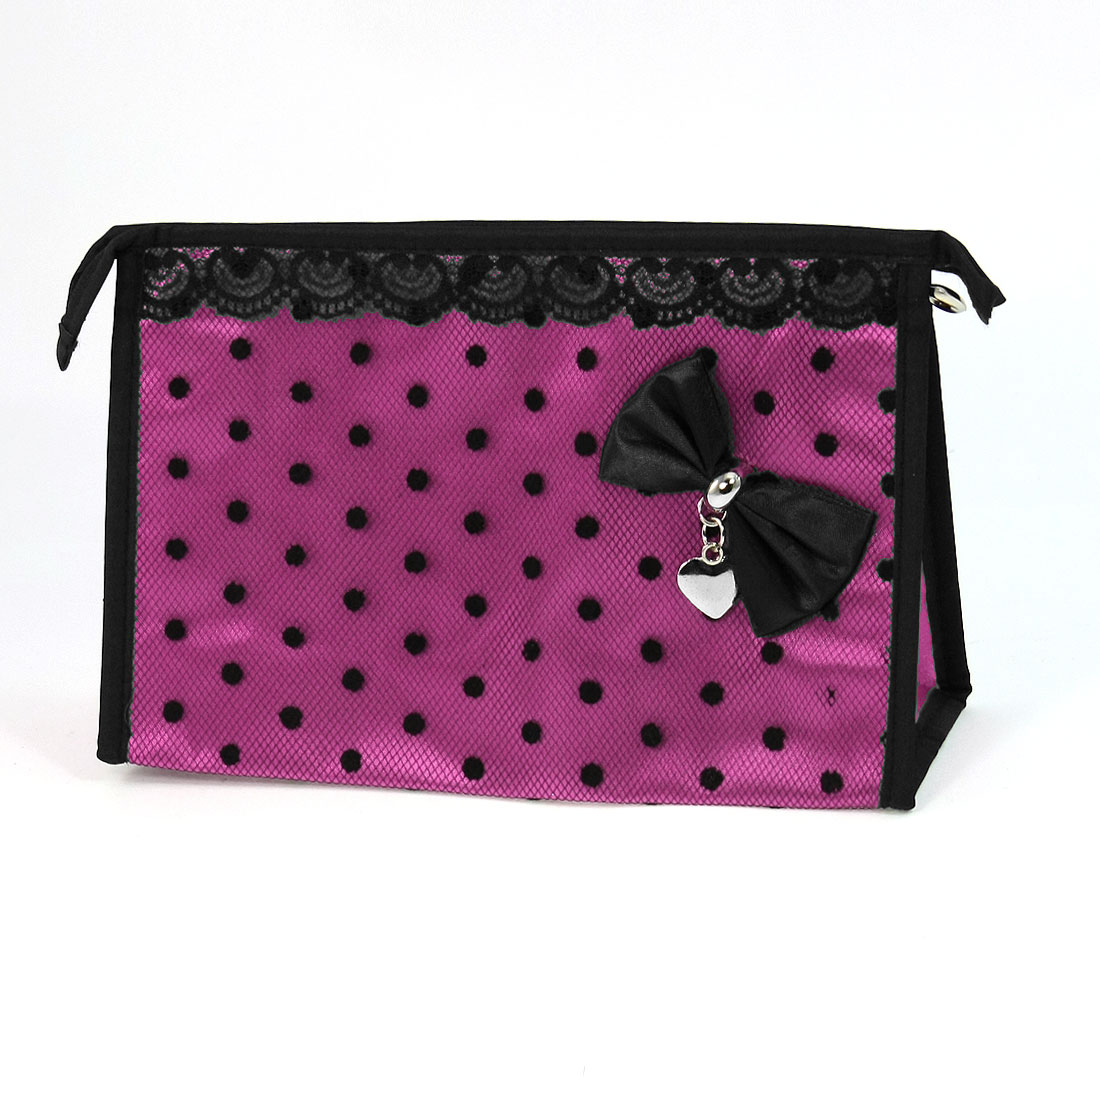 Lady Bowknot Accent Zip up Pocket Makeup Cosmetic Bag Holder Pouch Fuchsia Black